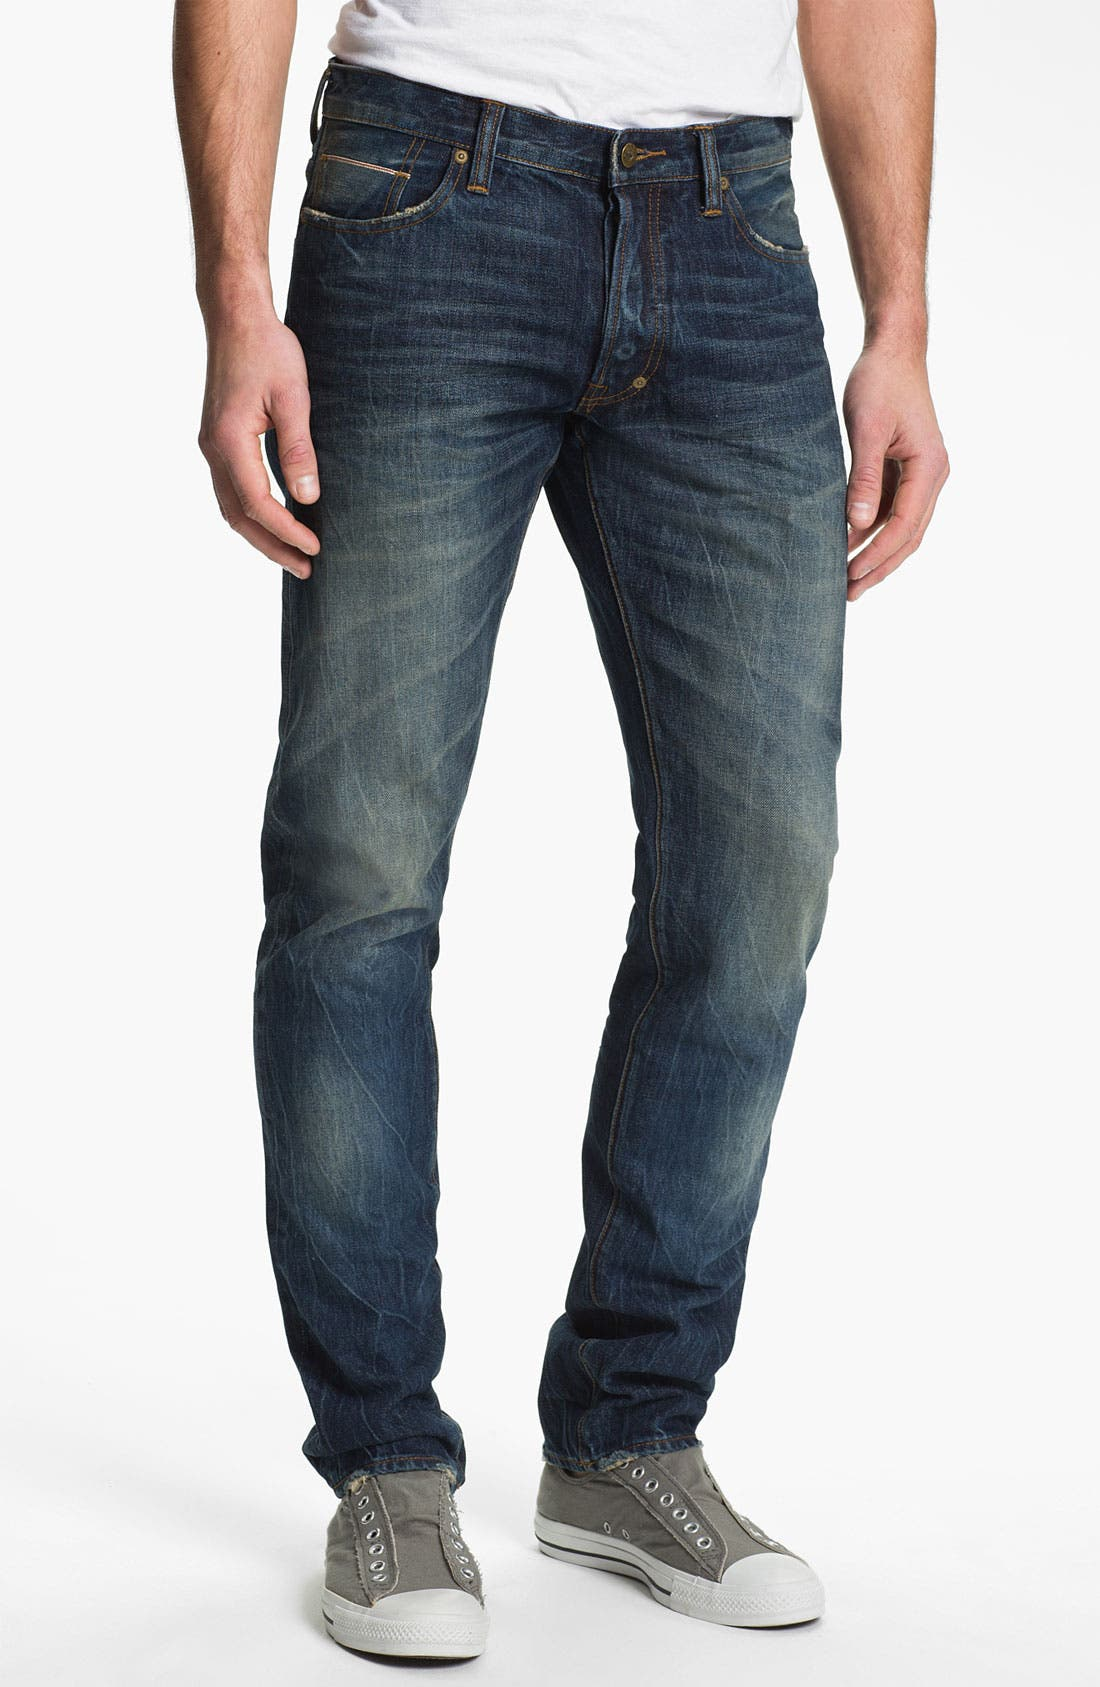 PRPS Barracuda Straight Leg Selvedge Jeans (1 Year)